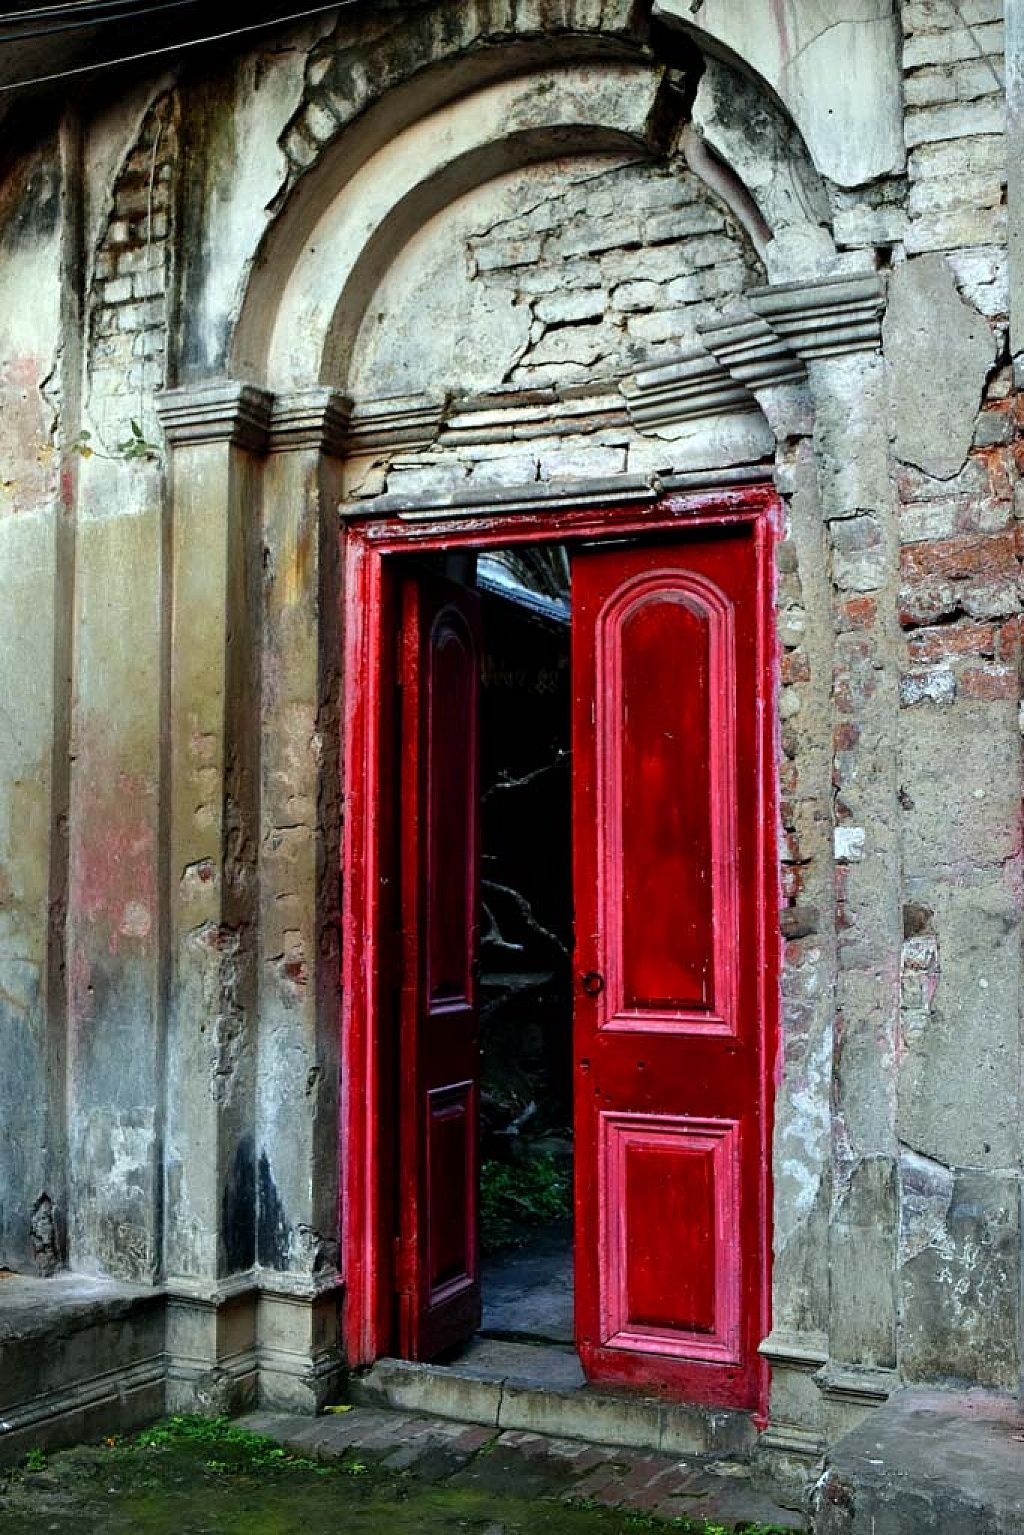 Incroyable The Red Door The Old #door At North #kolkata. #India